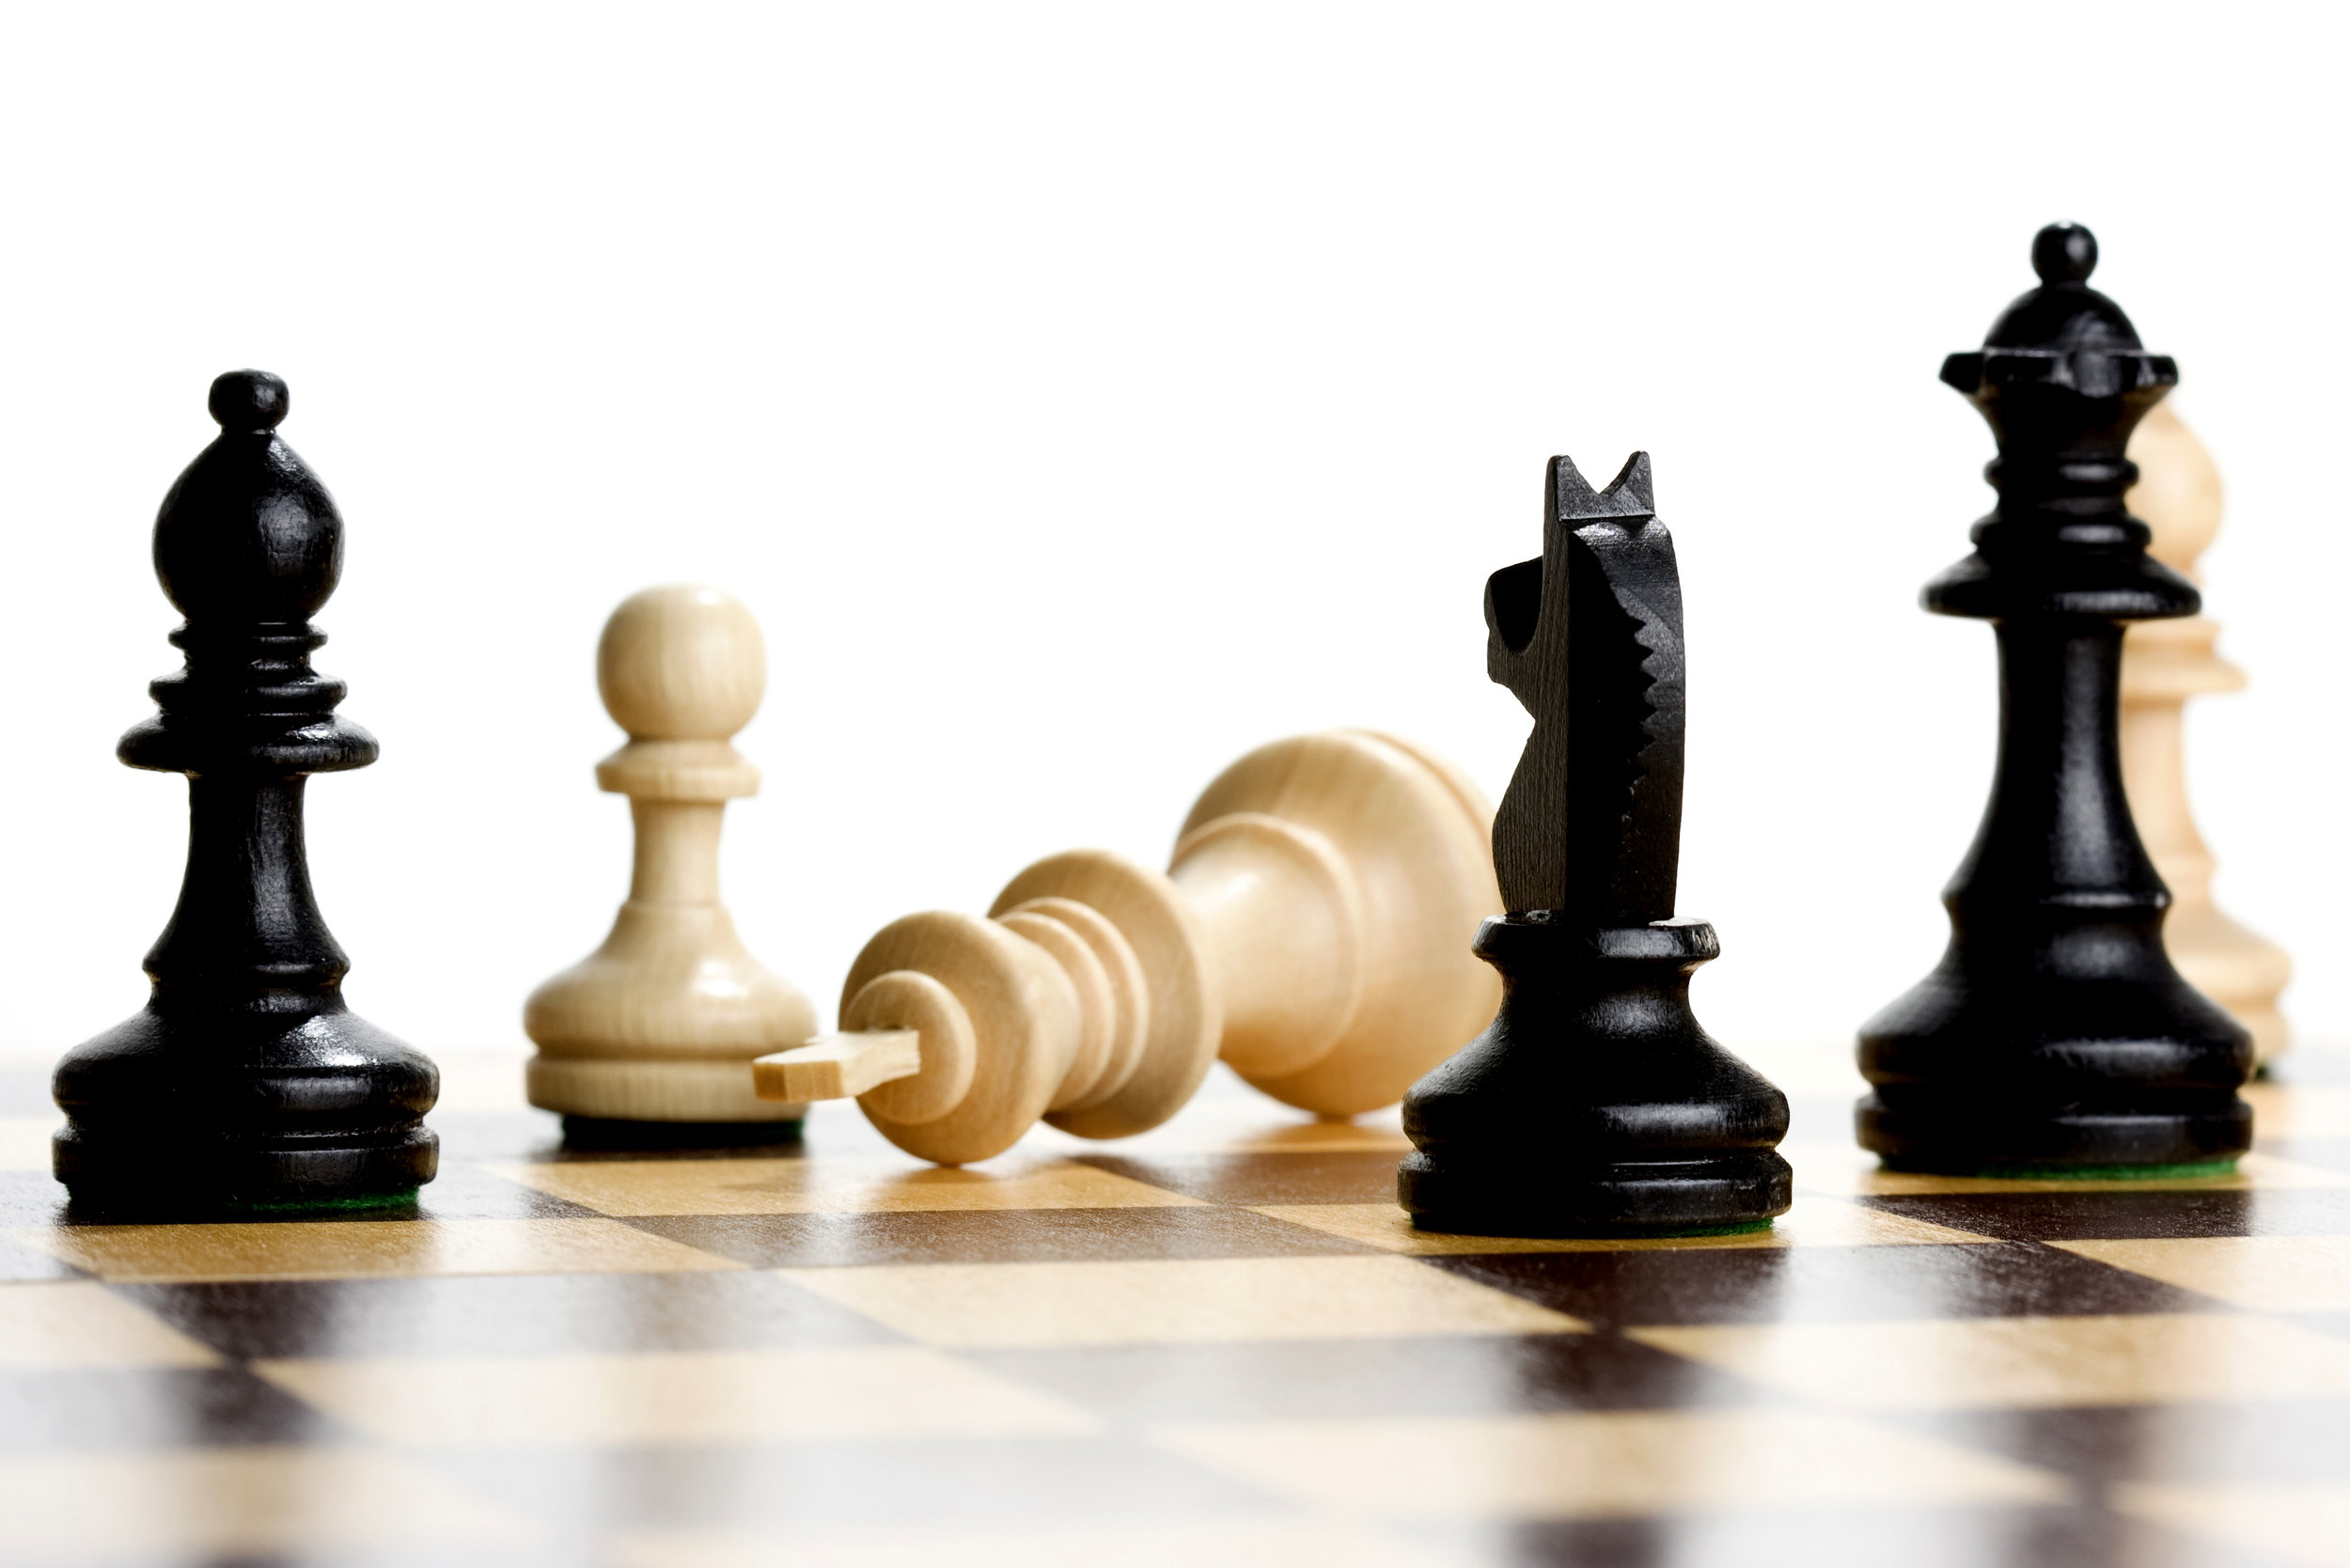 Chess-pieces-011-2.jpg